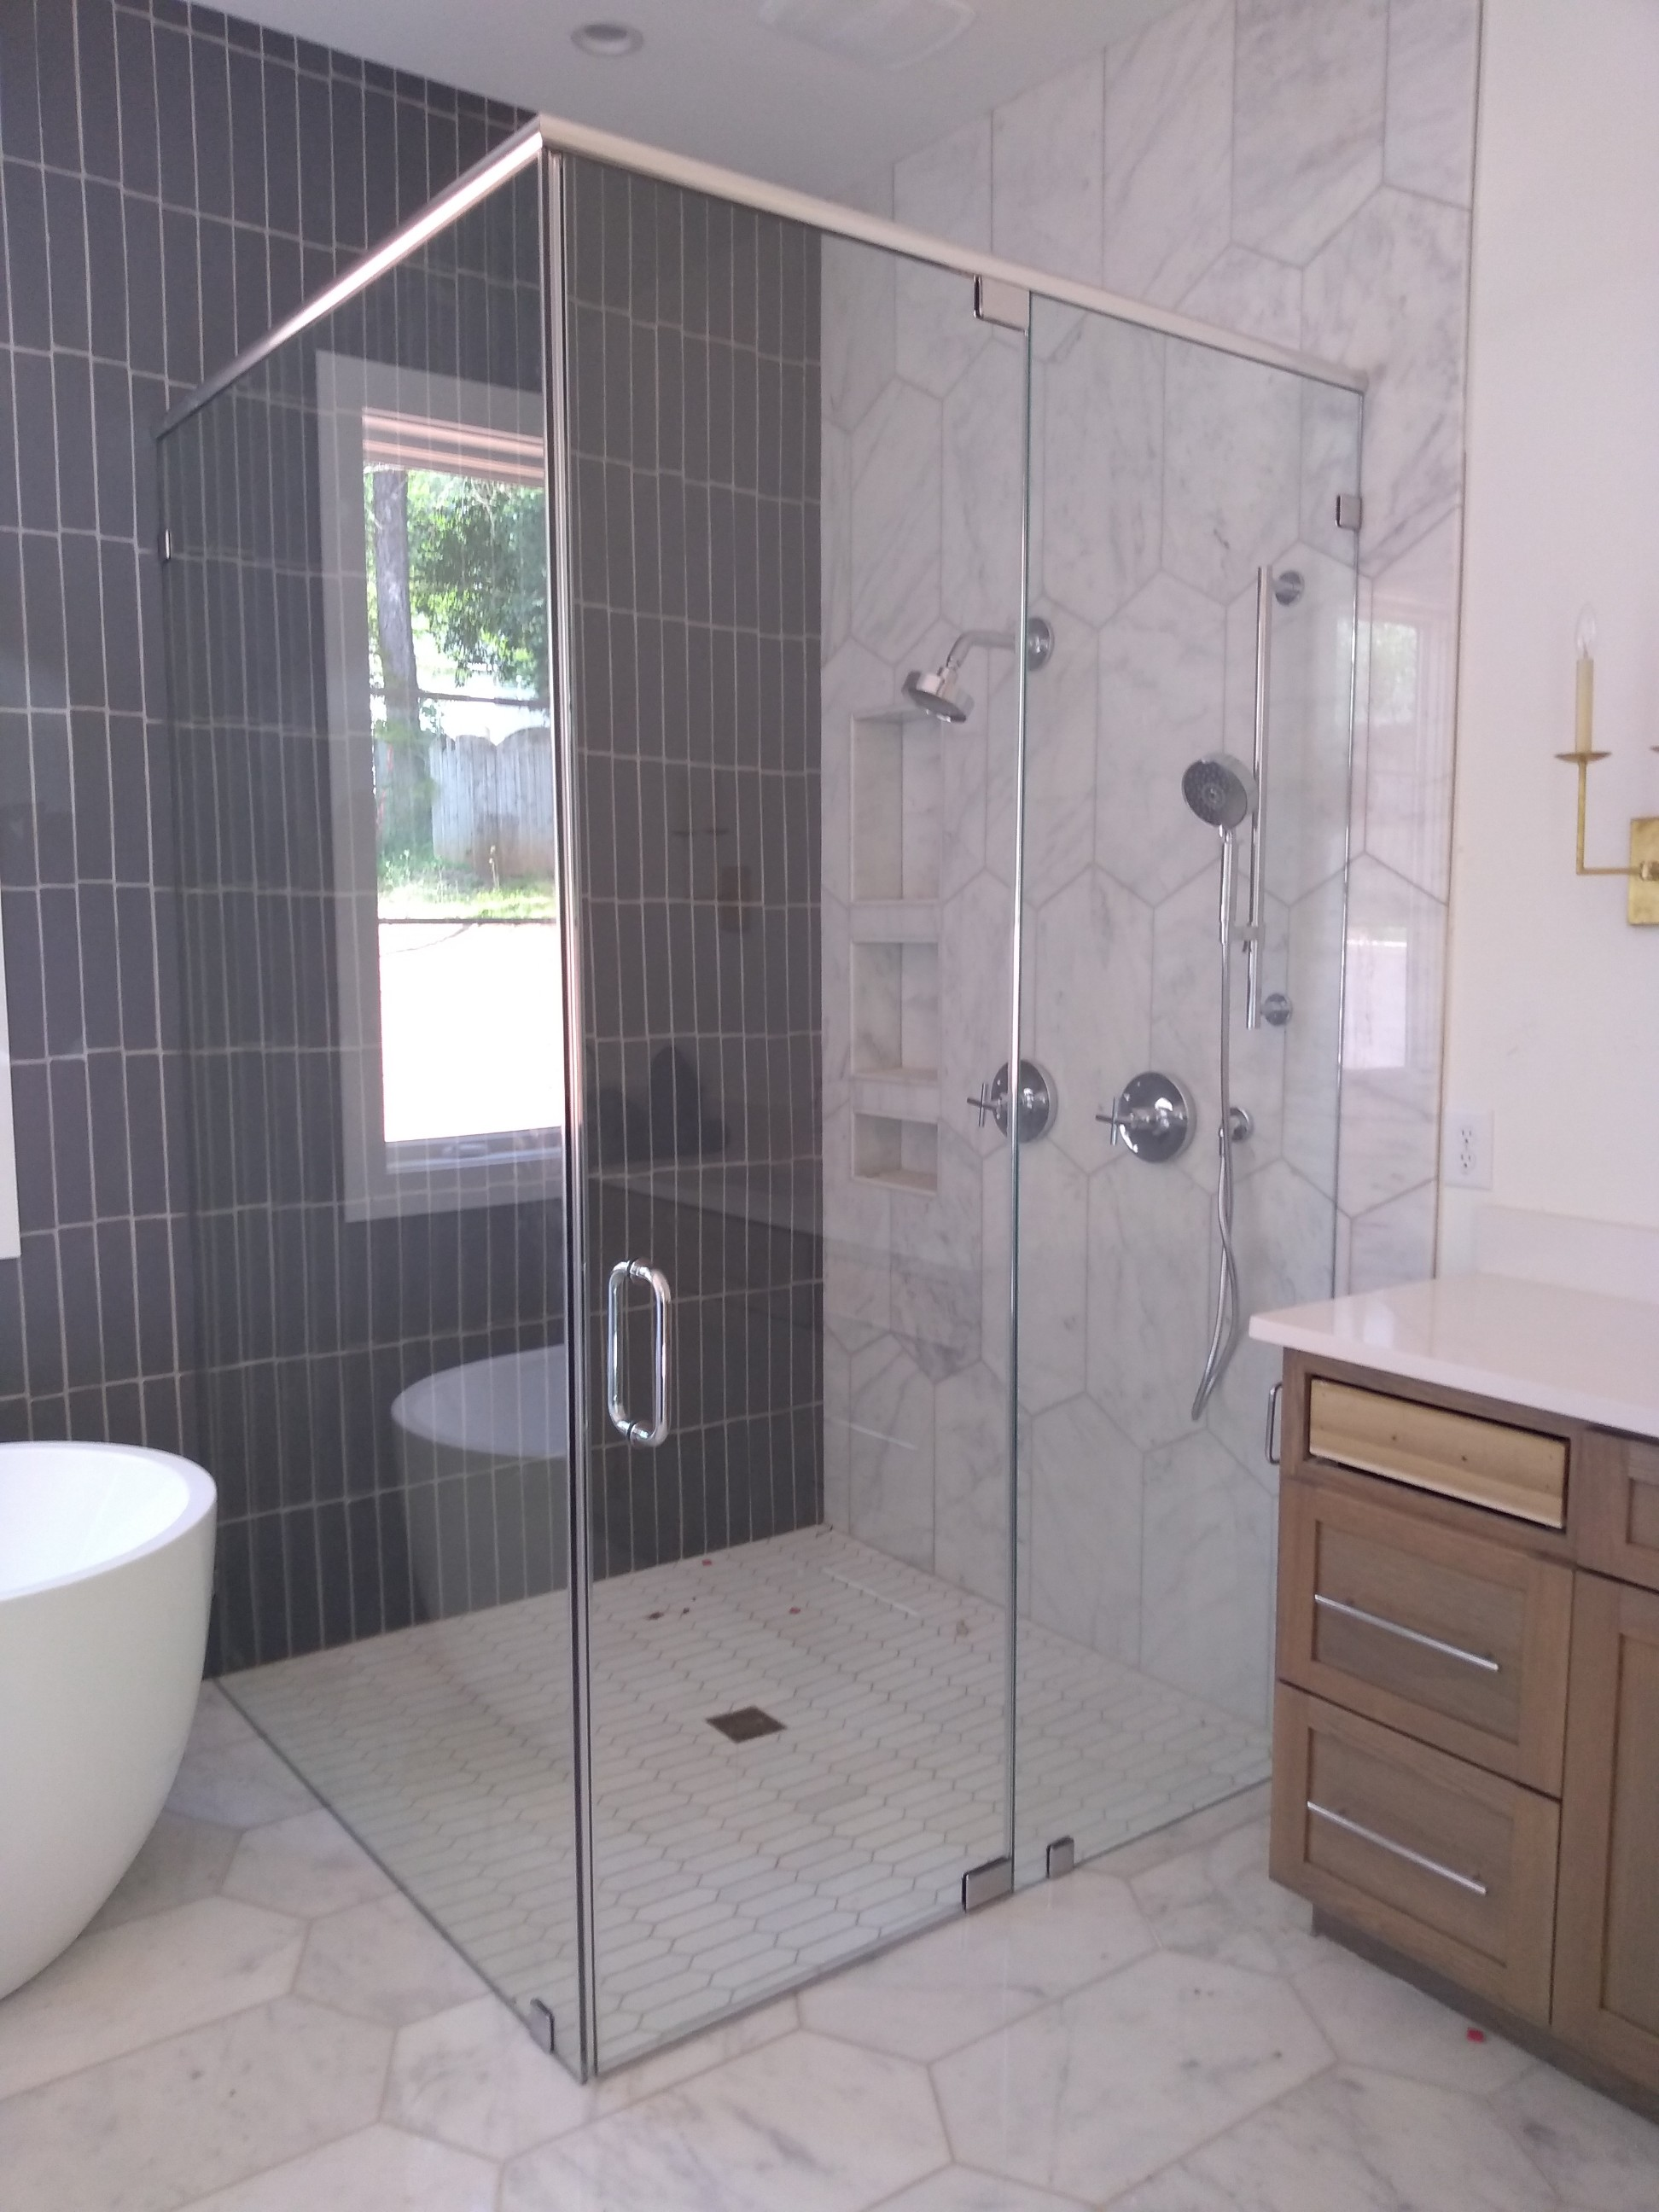 Curbless Shower with Pivot Hinge